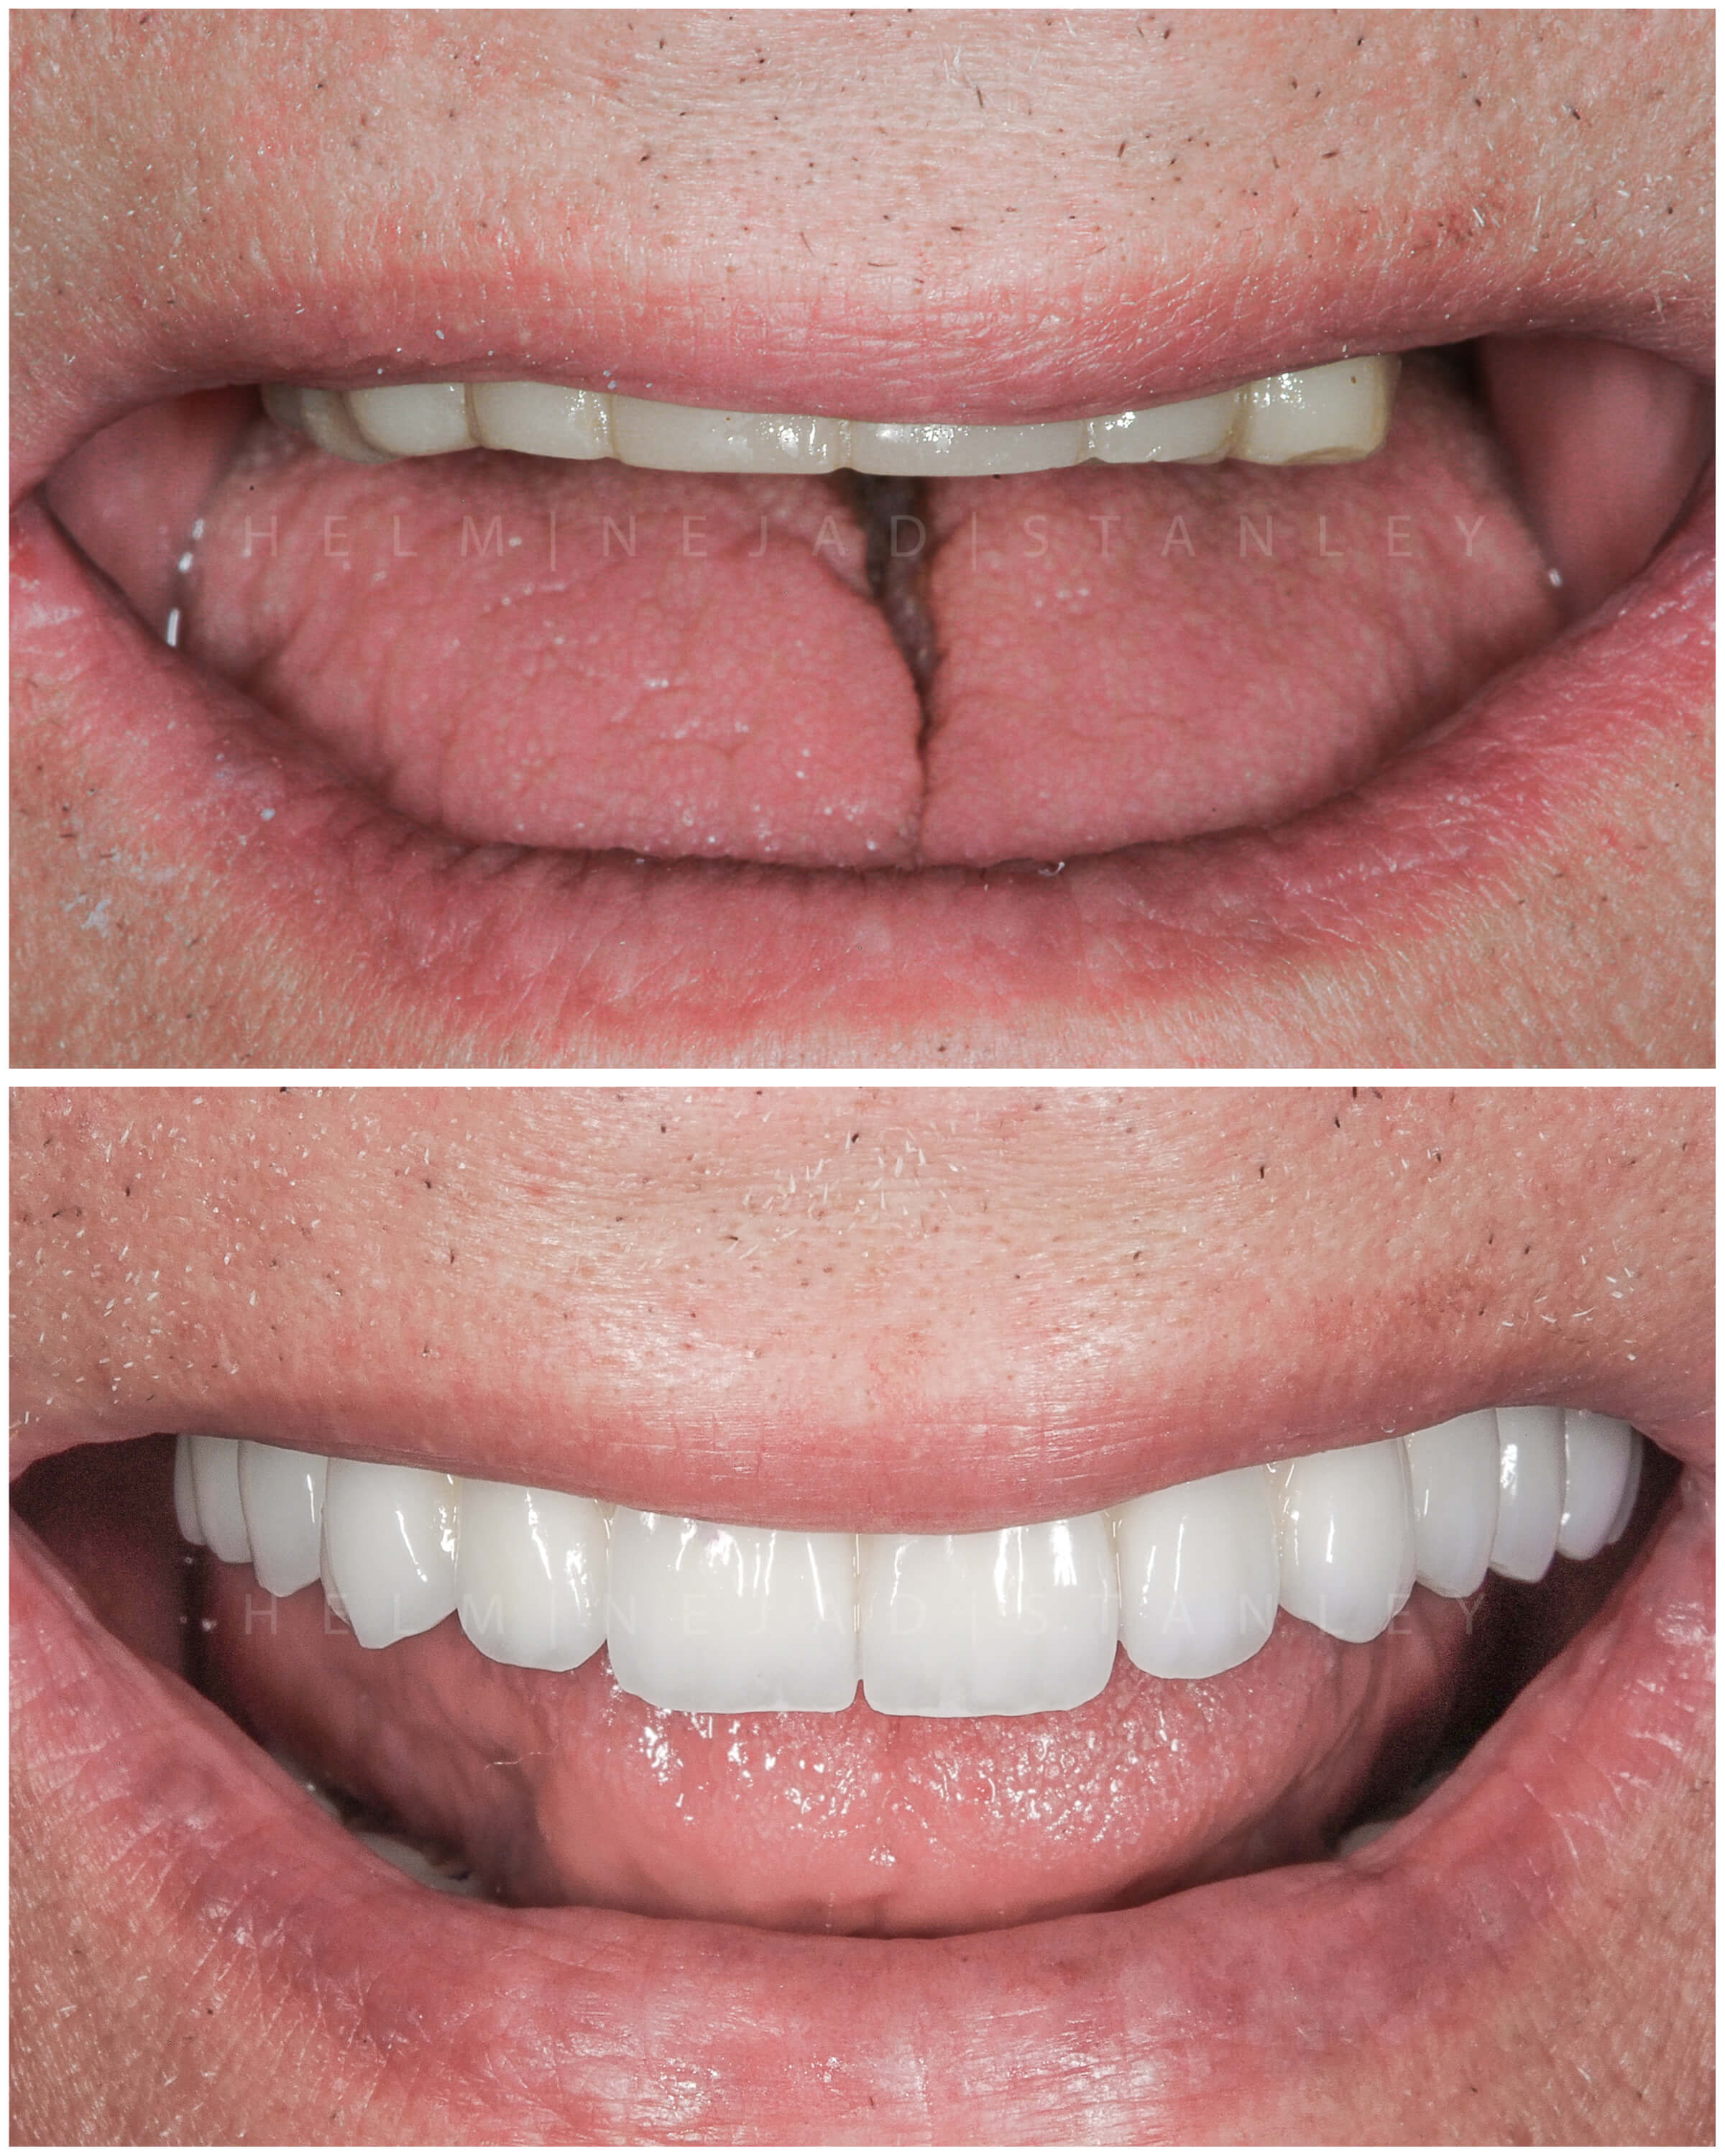 Cosmetic smile makeover before and after of the upper arch.